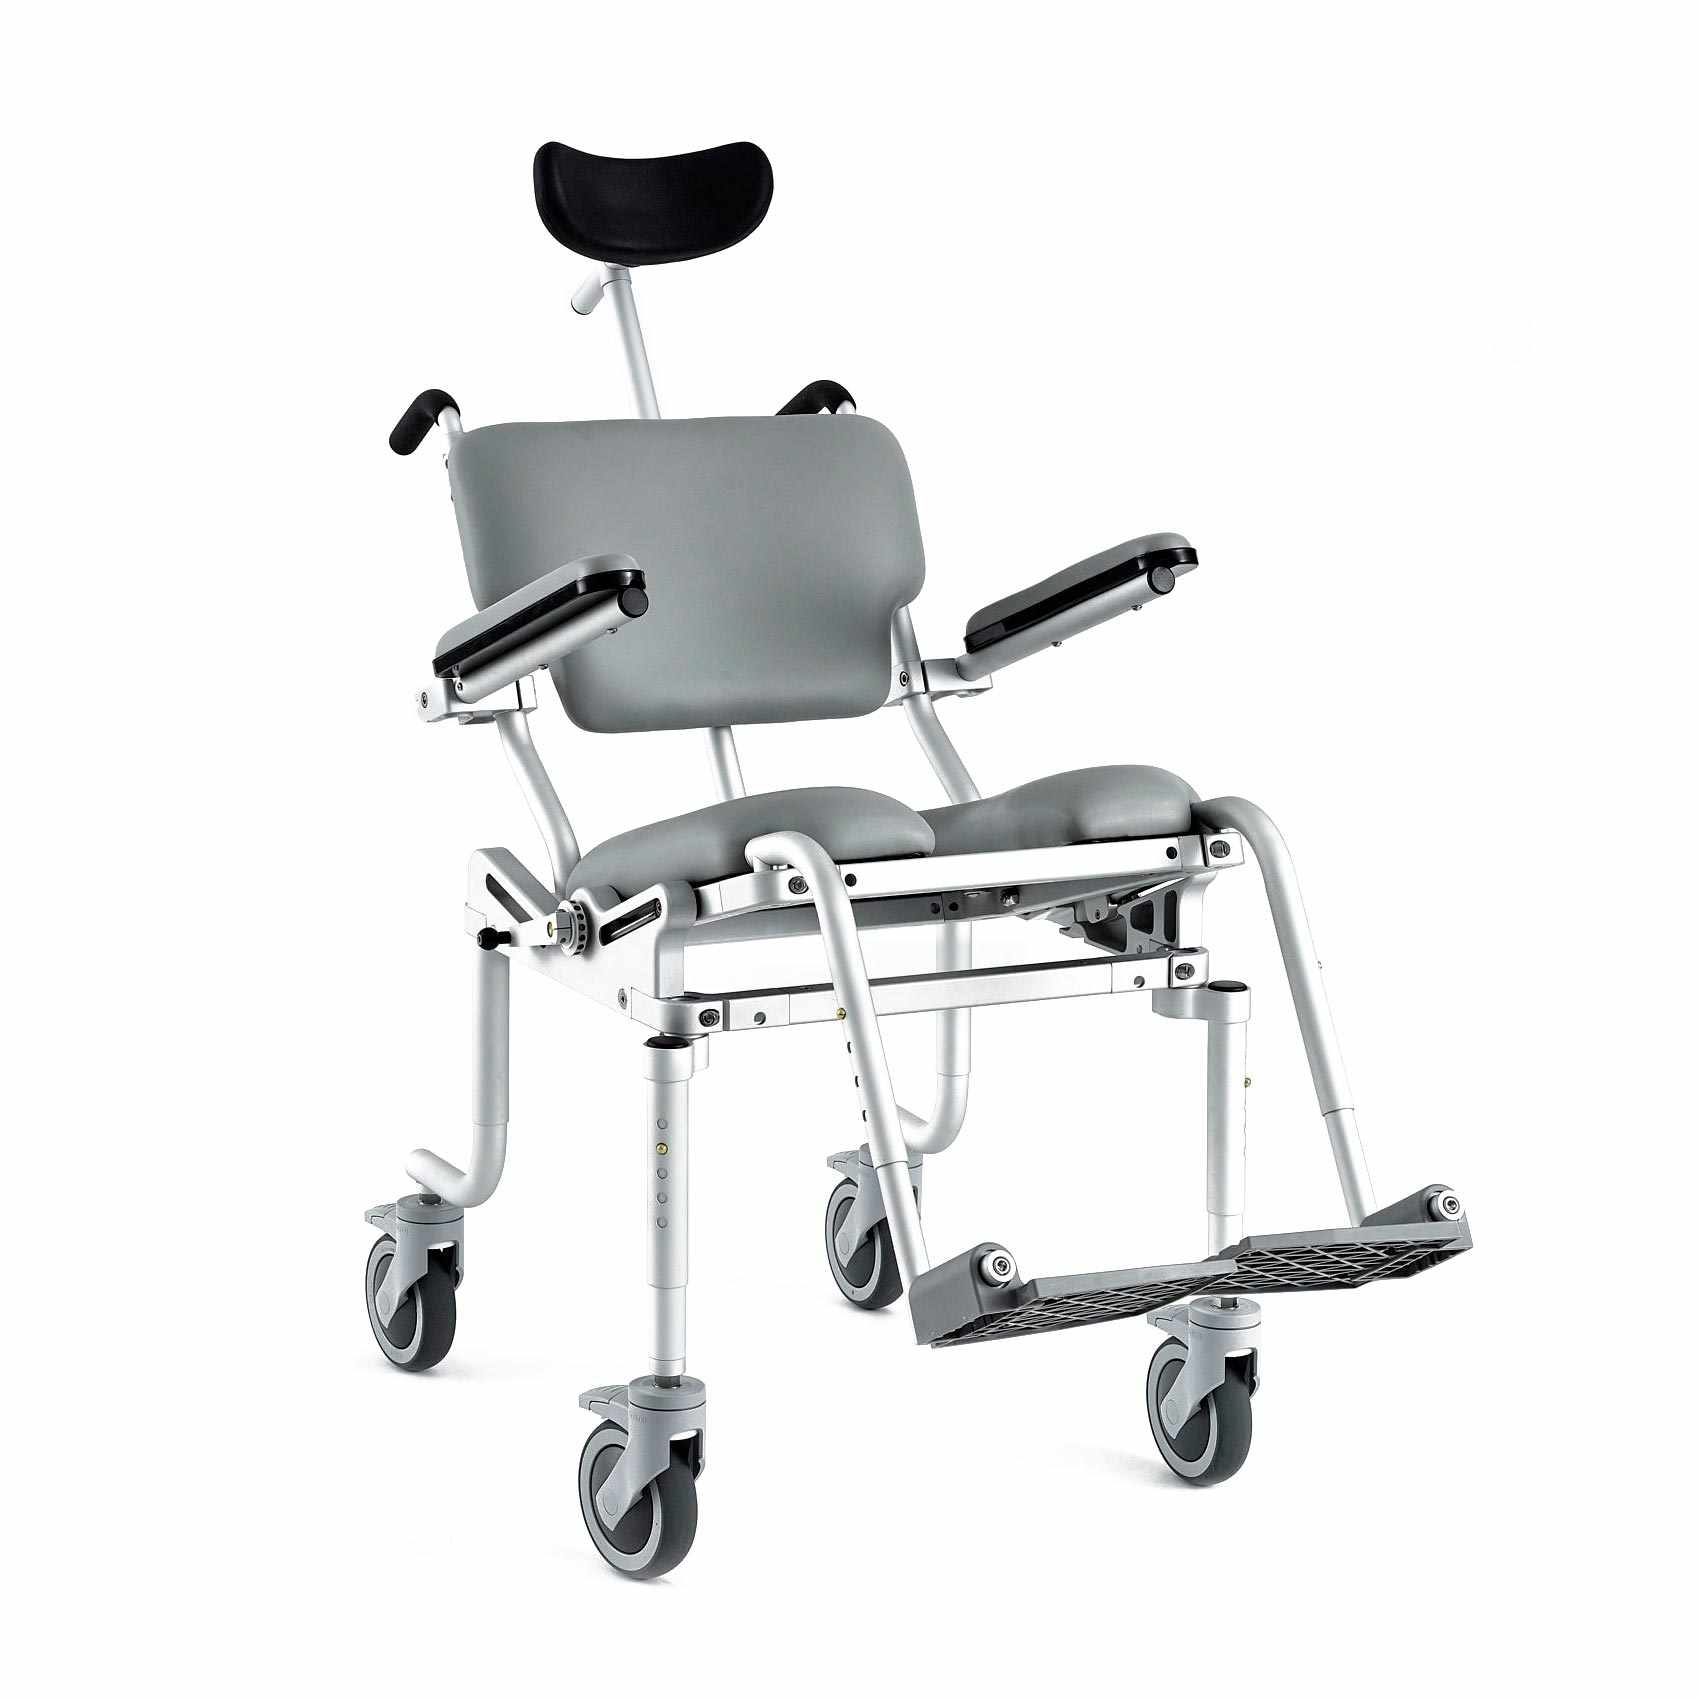 Nuprodx Multichair 4000Tilt Roll-In Shower Commode Chair | Medicaleshop